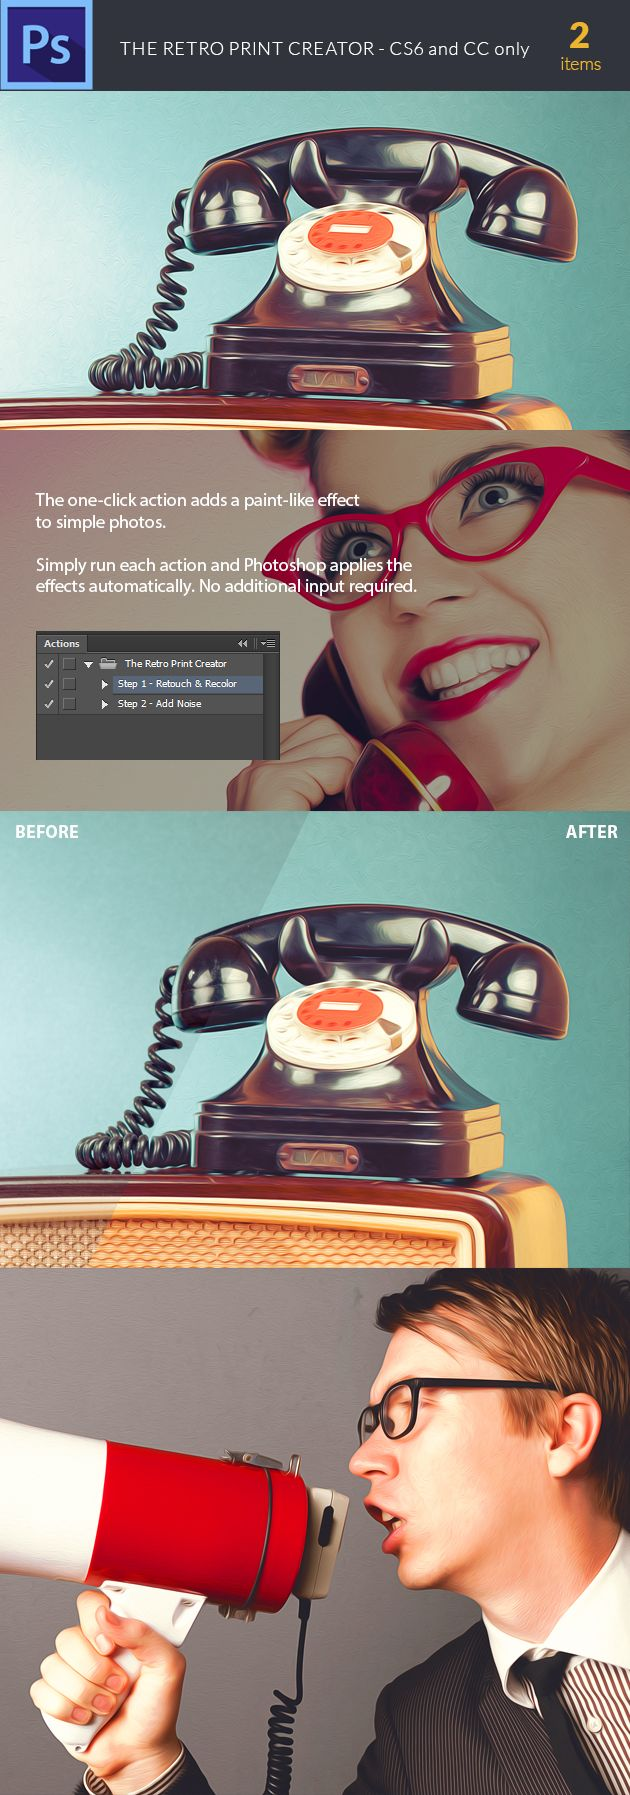 The Retro Print Creator Photoshop Action can be found here: https://www.inkydeals.com/deal/1000-photoshop-resources-bundle/